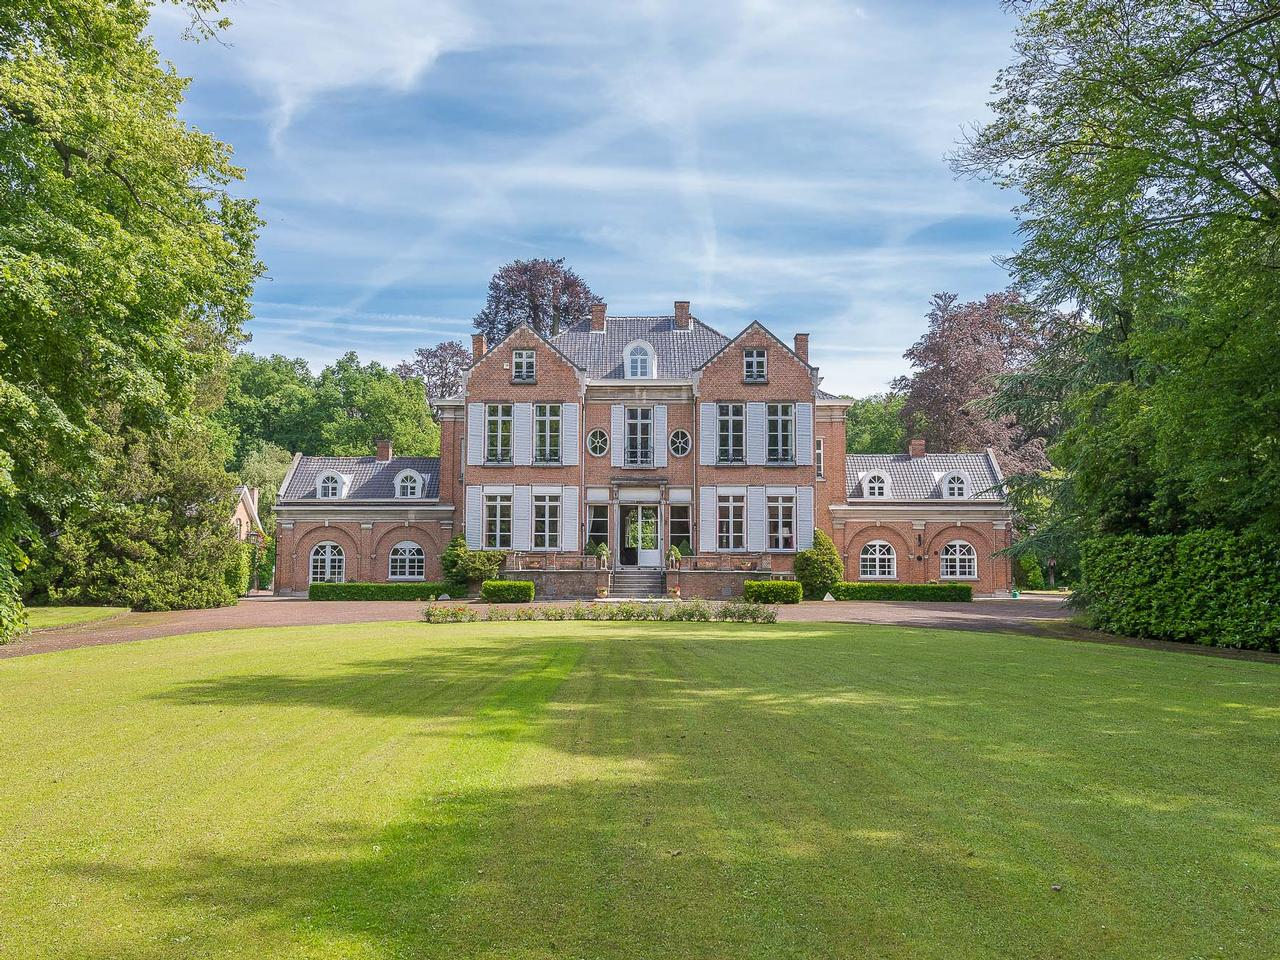 Other Residential for Sale at Province d'Anvers I Lier Other Belgium, Other Areas In Belgium, 2500 Belgium